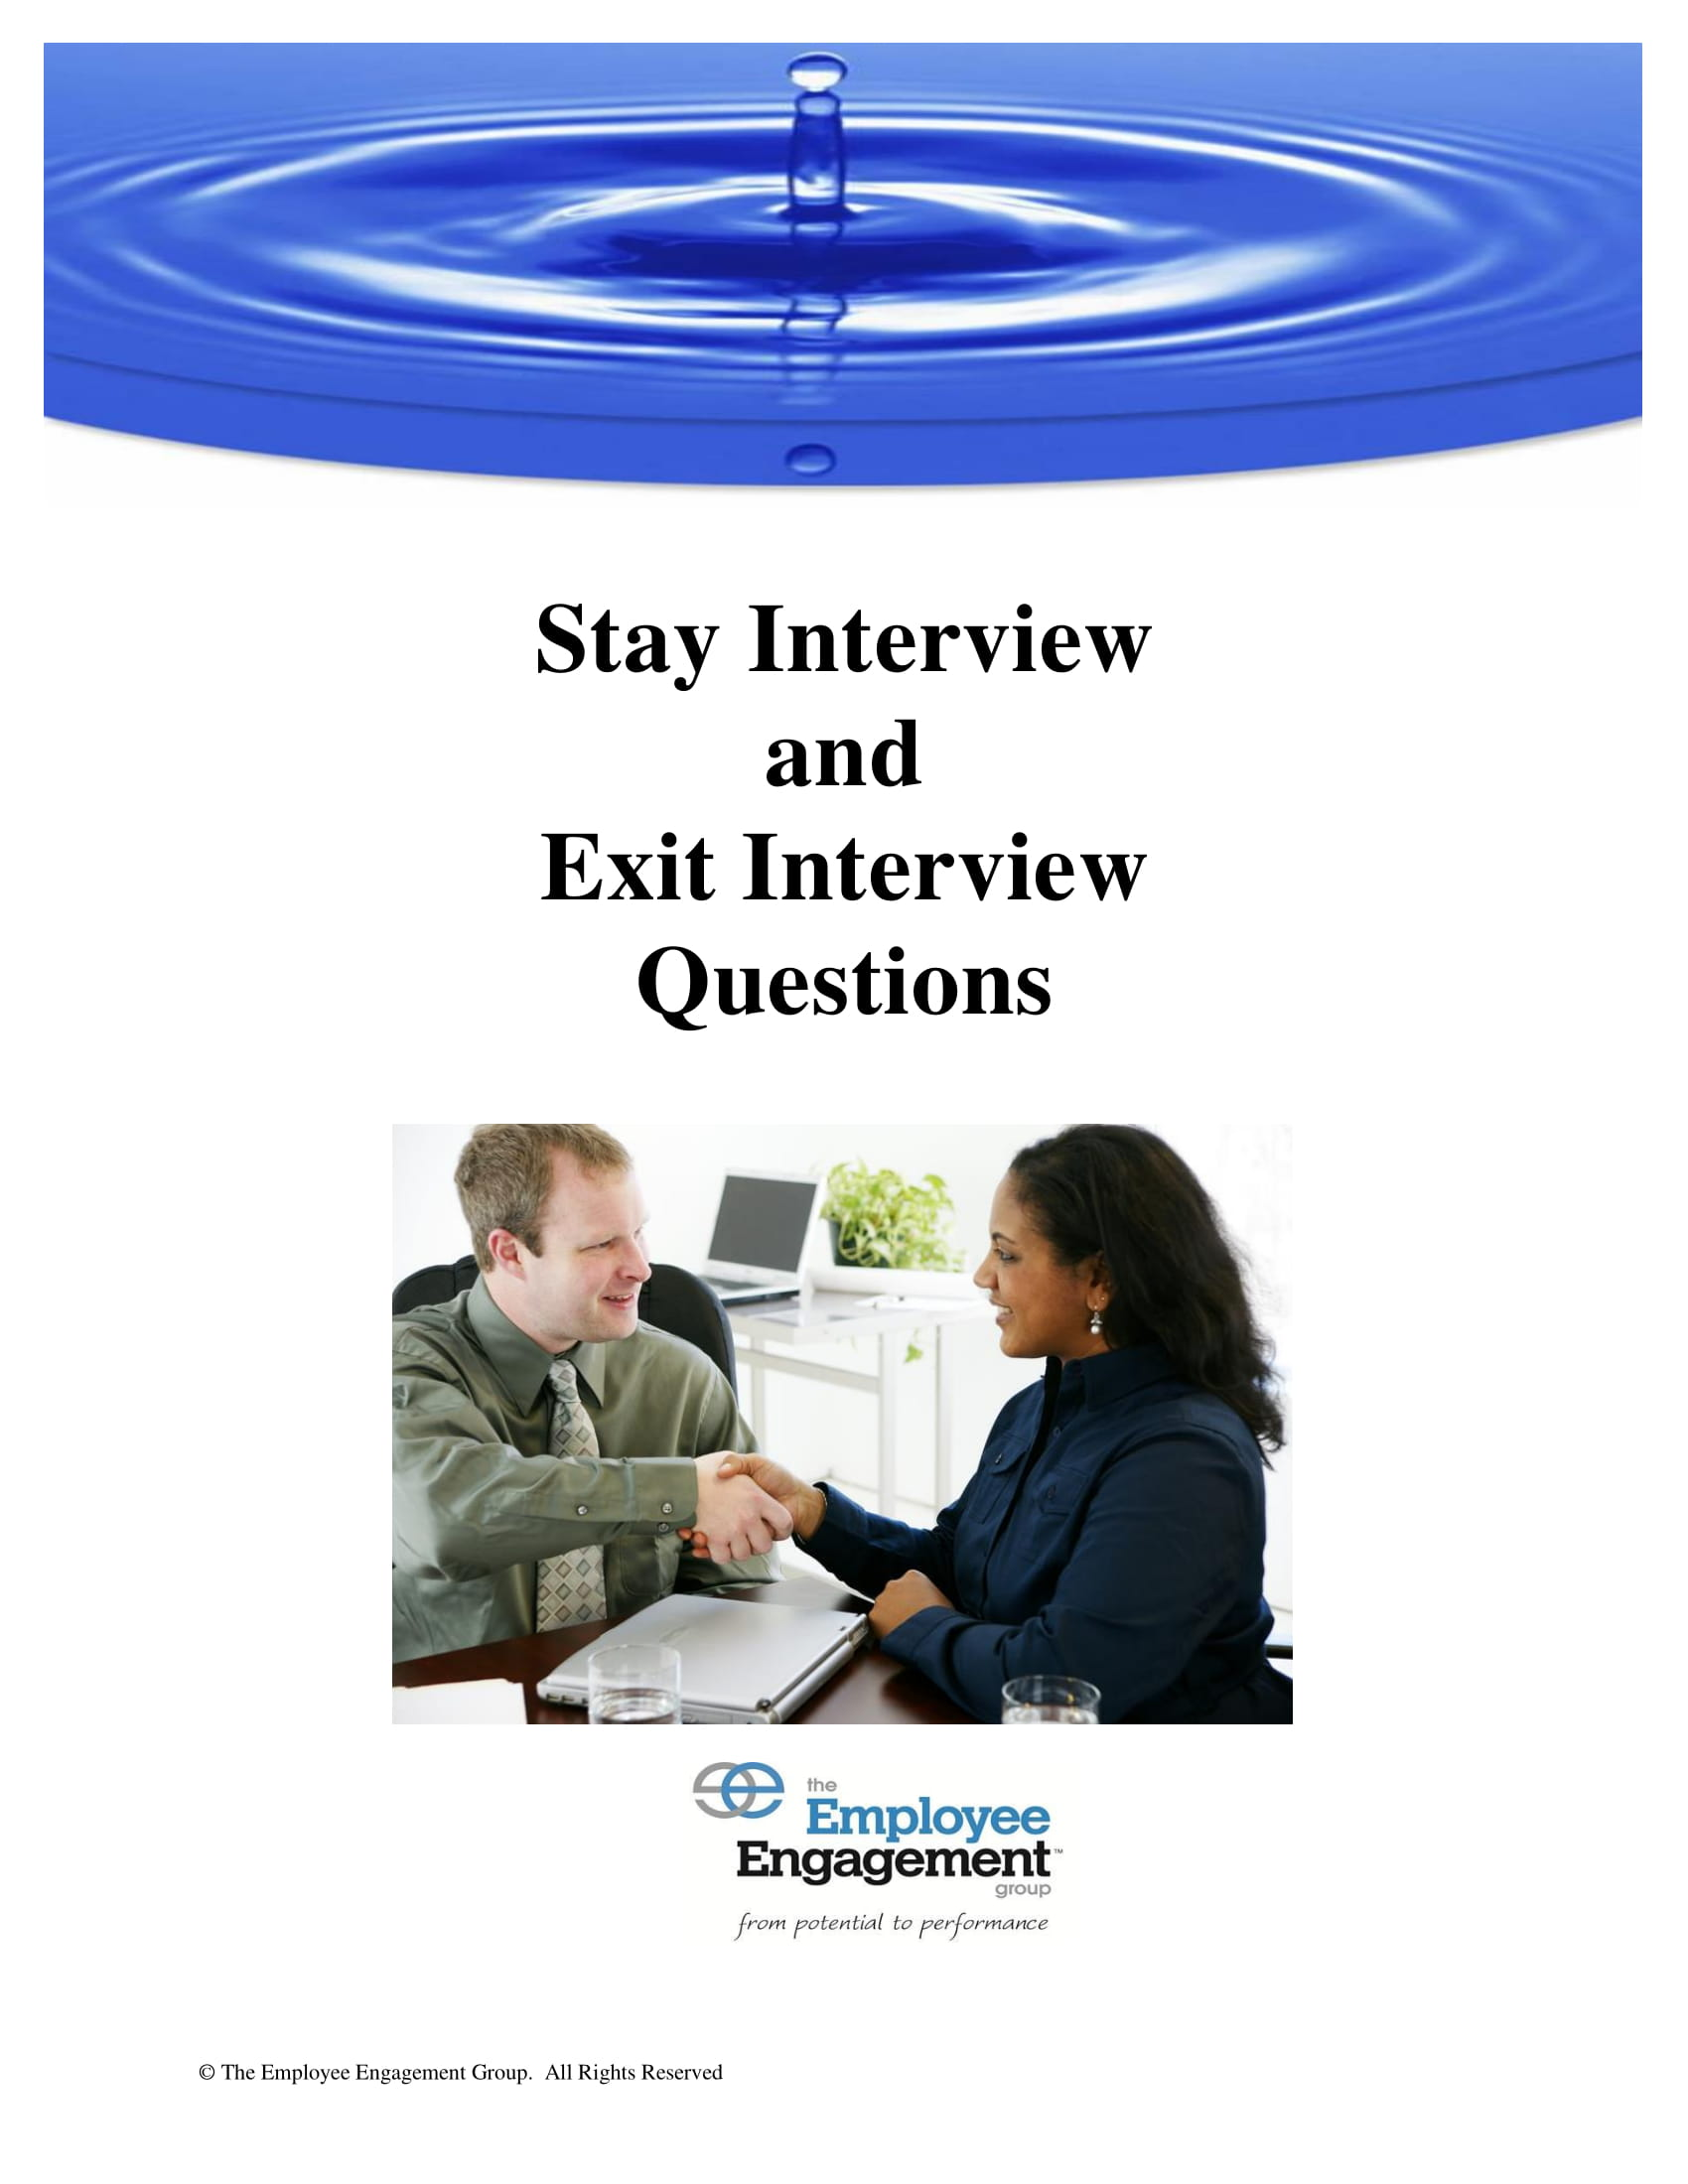 stay interview and exit interview questions